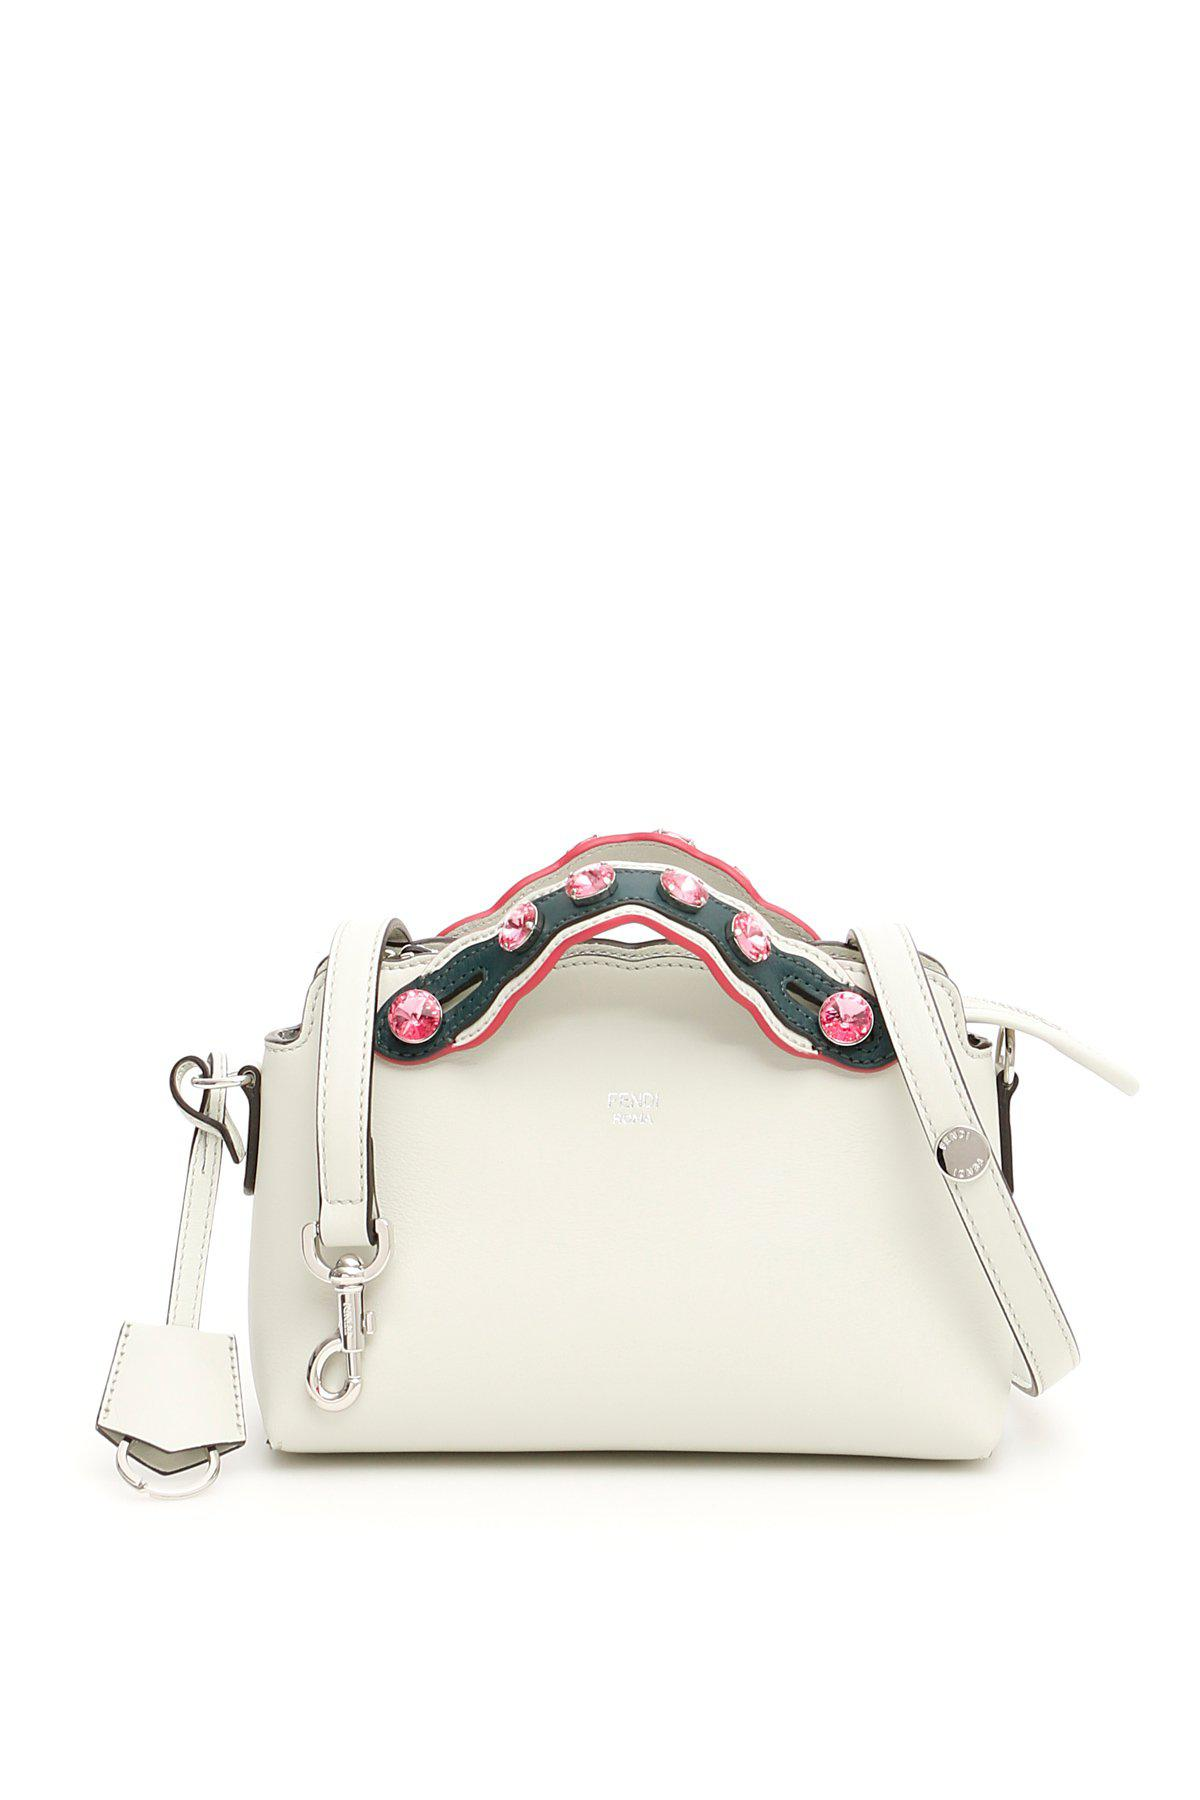 Lyst - Fendi By The Way Embellished Tote Bag in White 6f1e85ae4740e